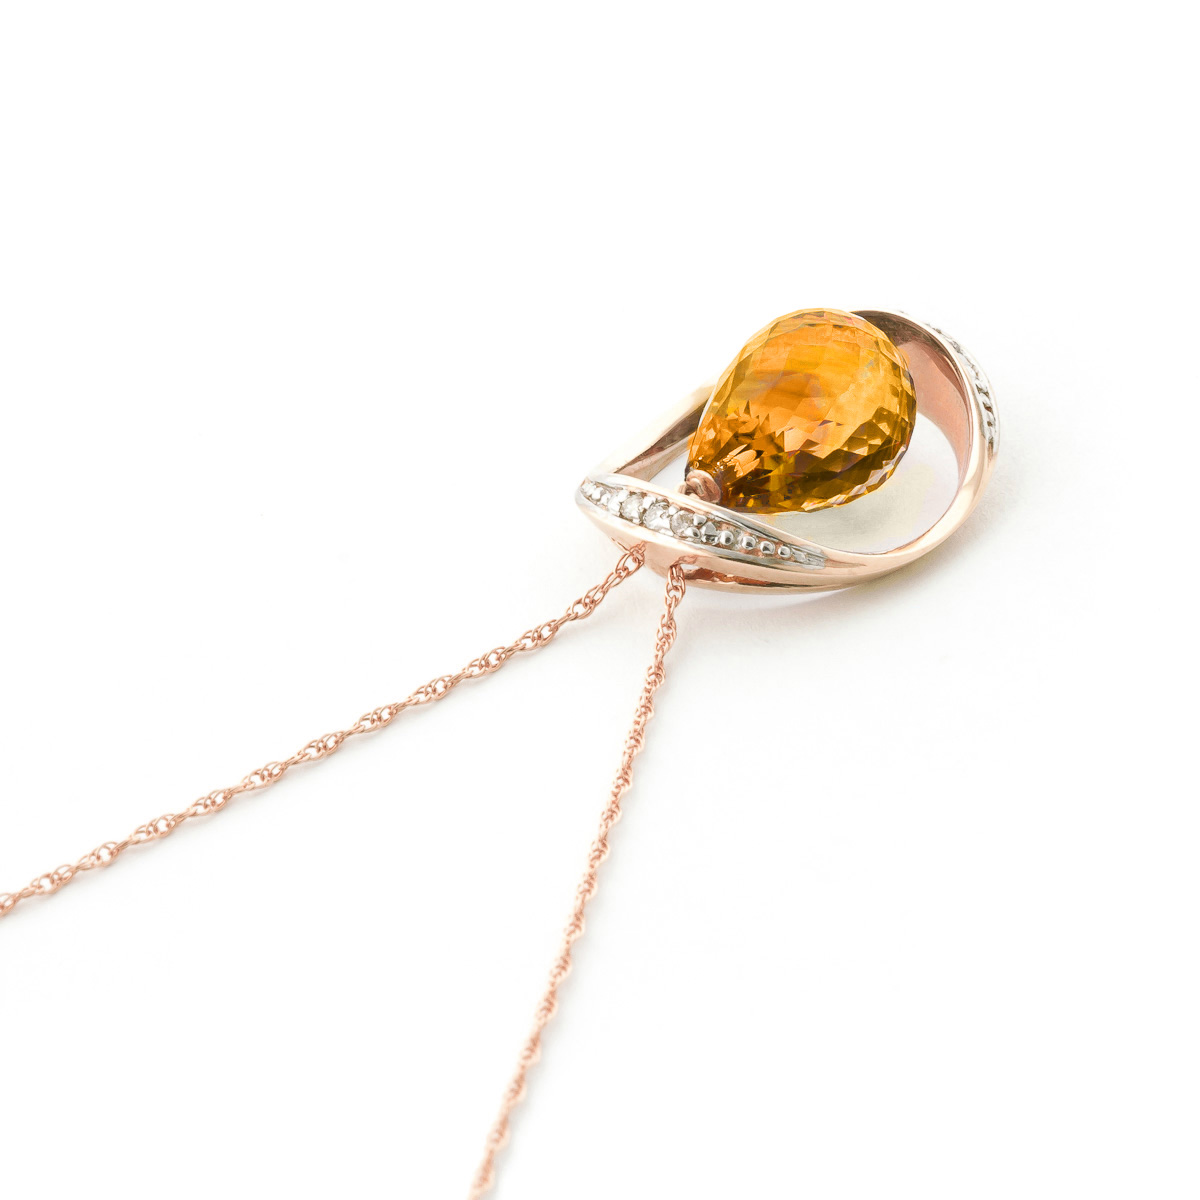 Citrine and Diamond Pendant Necklace 9.5ct in 9ct Rose Gold